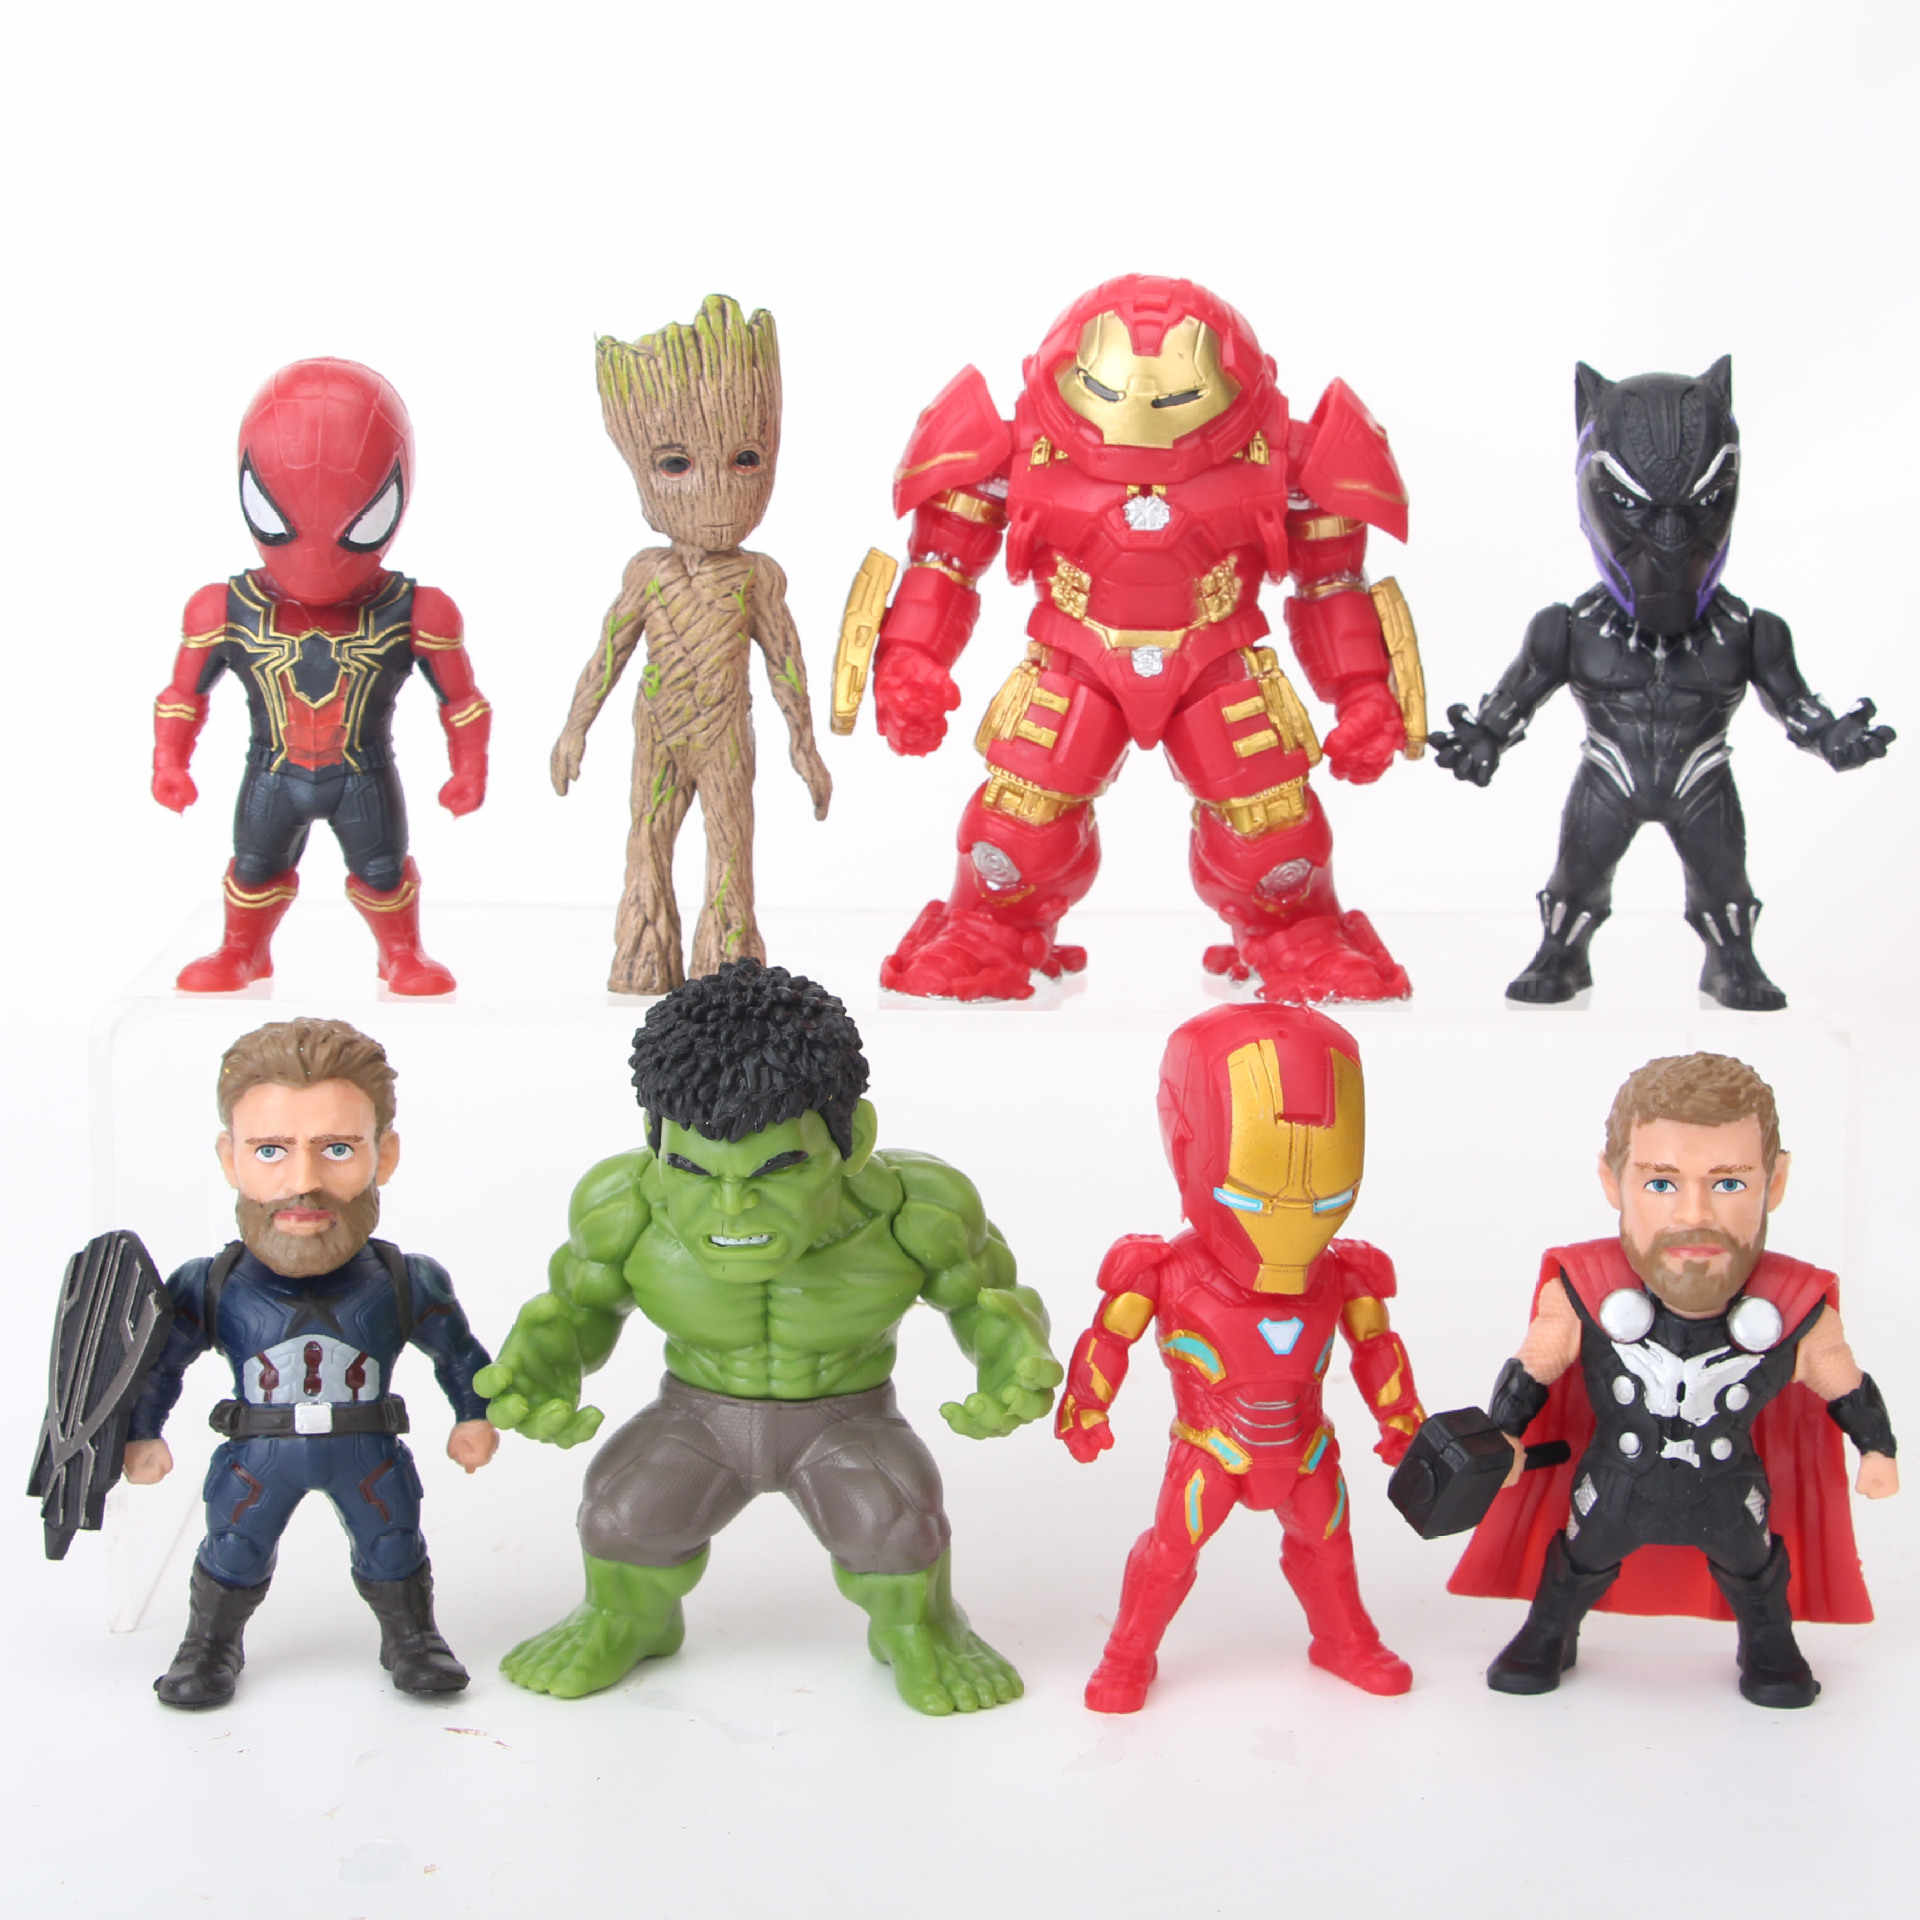 8 pz/set Marvel Avengers Infinity Guerra Hulkbuster IronMan Thor Captain America Spiderman Black Panther Hulk Figura Giocattoli